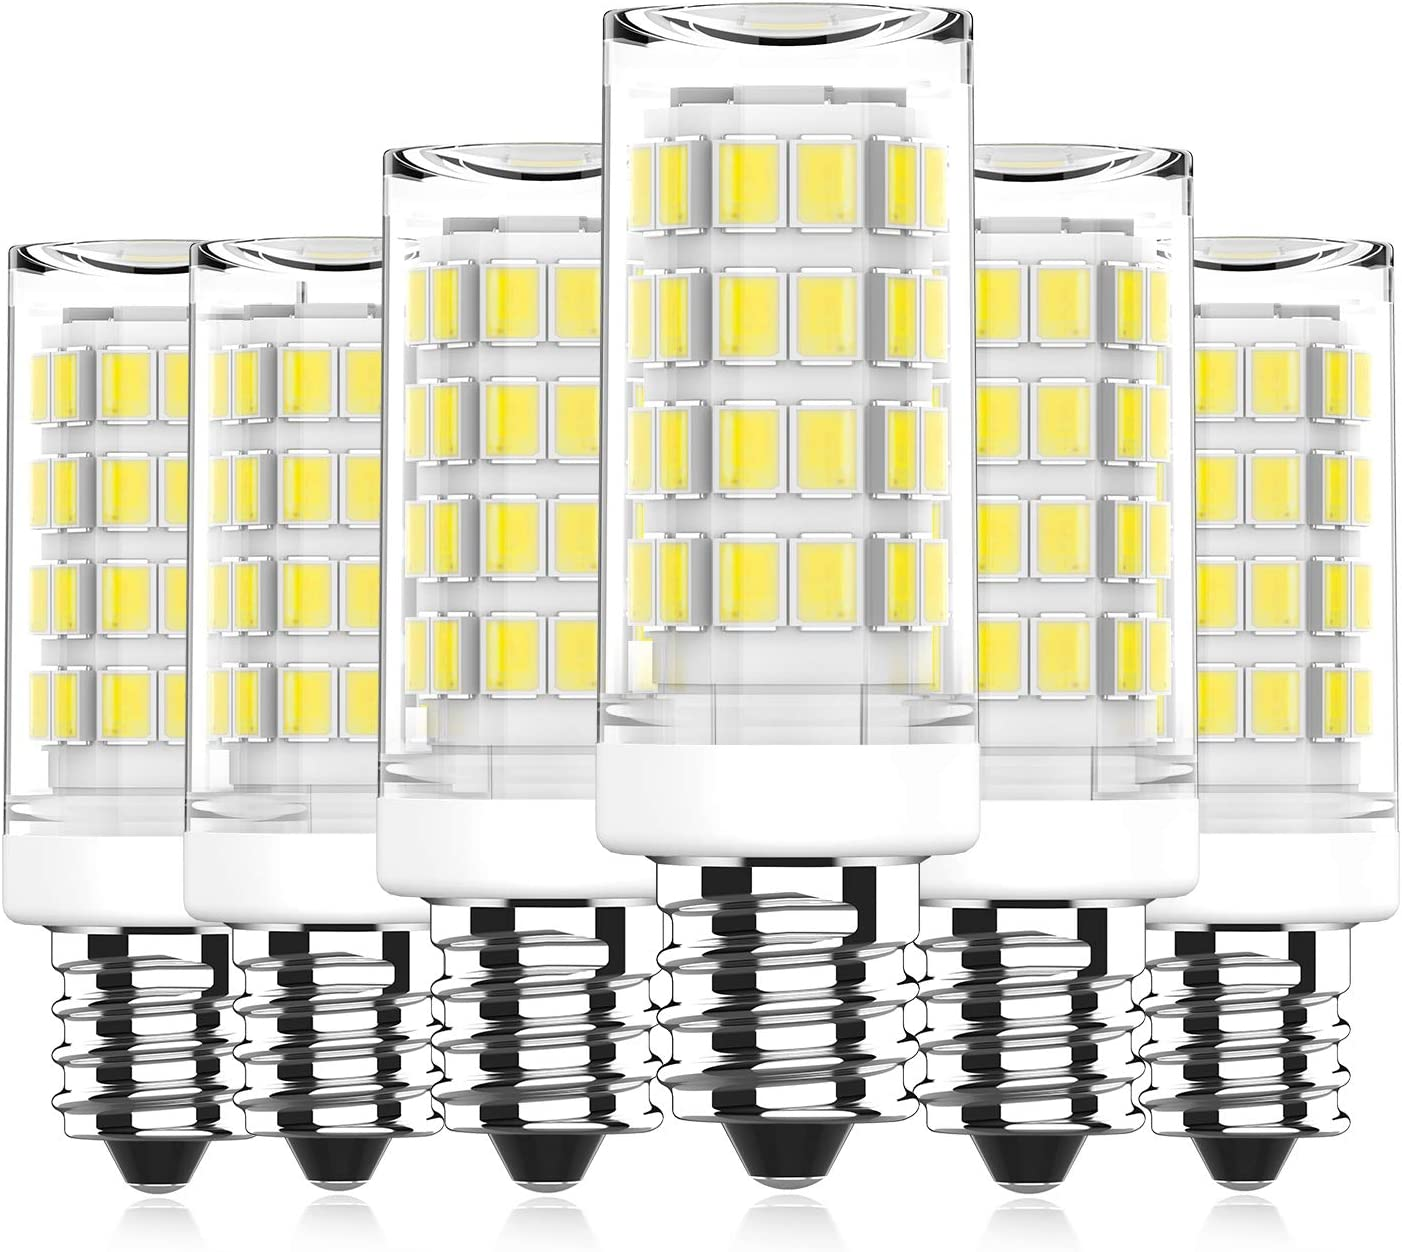 E12 LED Bulb 5W Equivalent to 40W Halogen Bulb, Daylight White 6000K, Candelabra Base E12 Light Bulbs for Ceiling Fan, Chandelier, Home Lighting, Non-dimmable, 6 Pack Yuiip